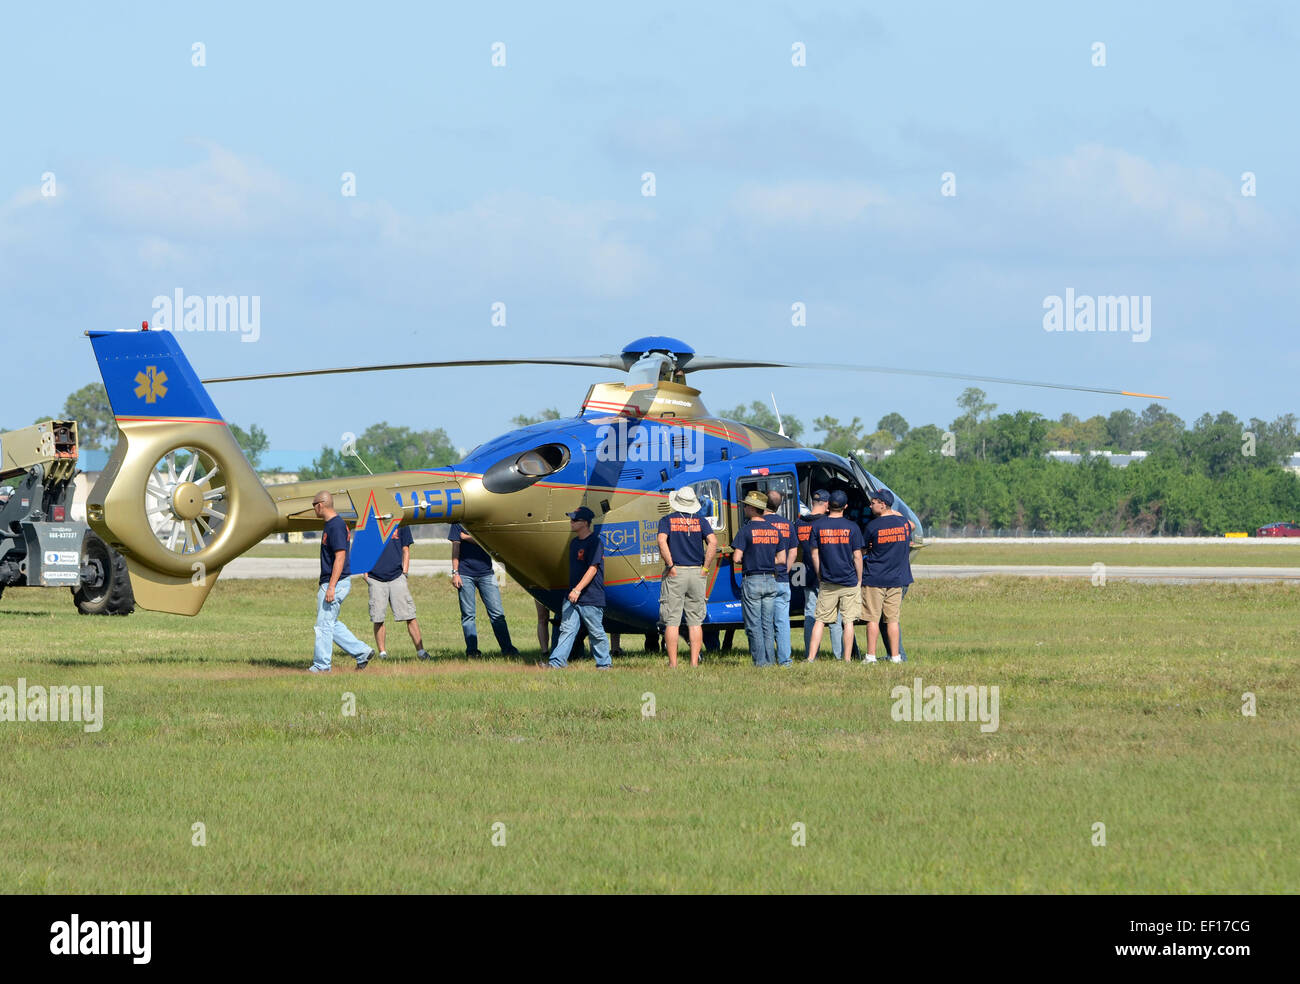 Lakeland, USA - April 1, 2012: Tampa General Hospital medical helicopter helps in training fire rescue emergency - Stock Image